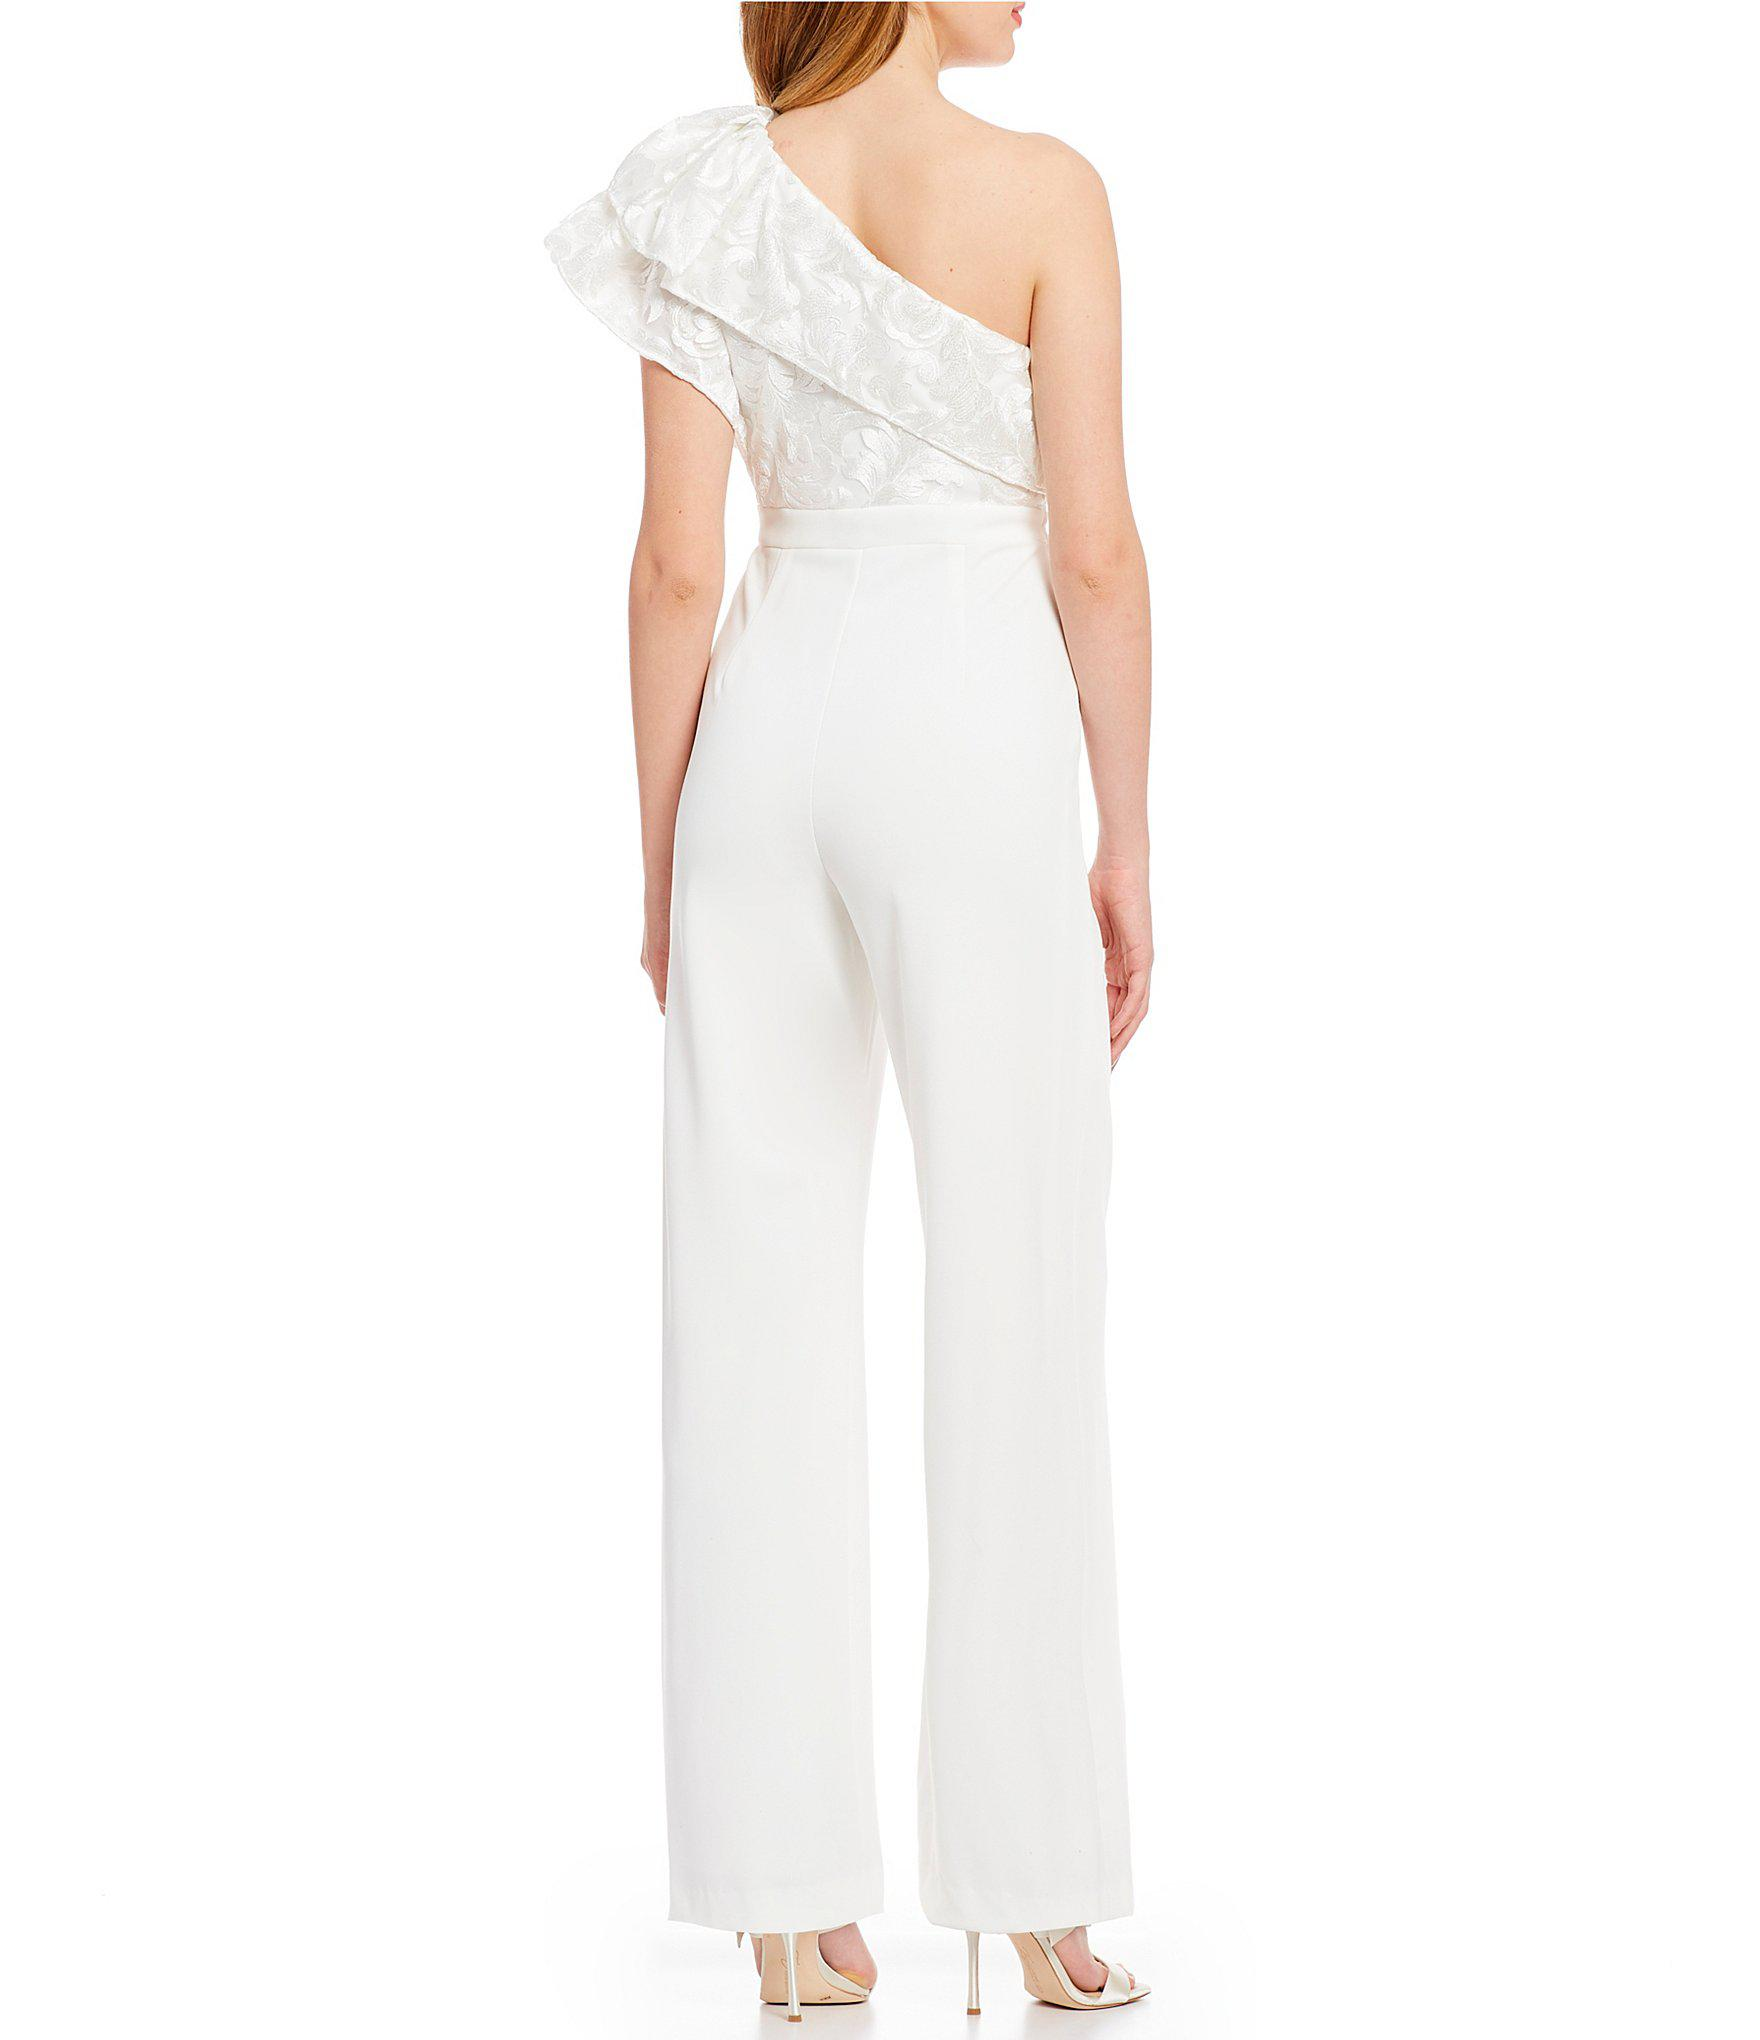 338f1489f99 Adrianna Papell - White Ruffle-detail One-shoulder Jumpsuit - Lyst. View  fullscreen